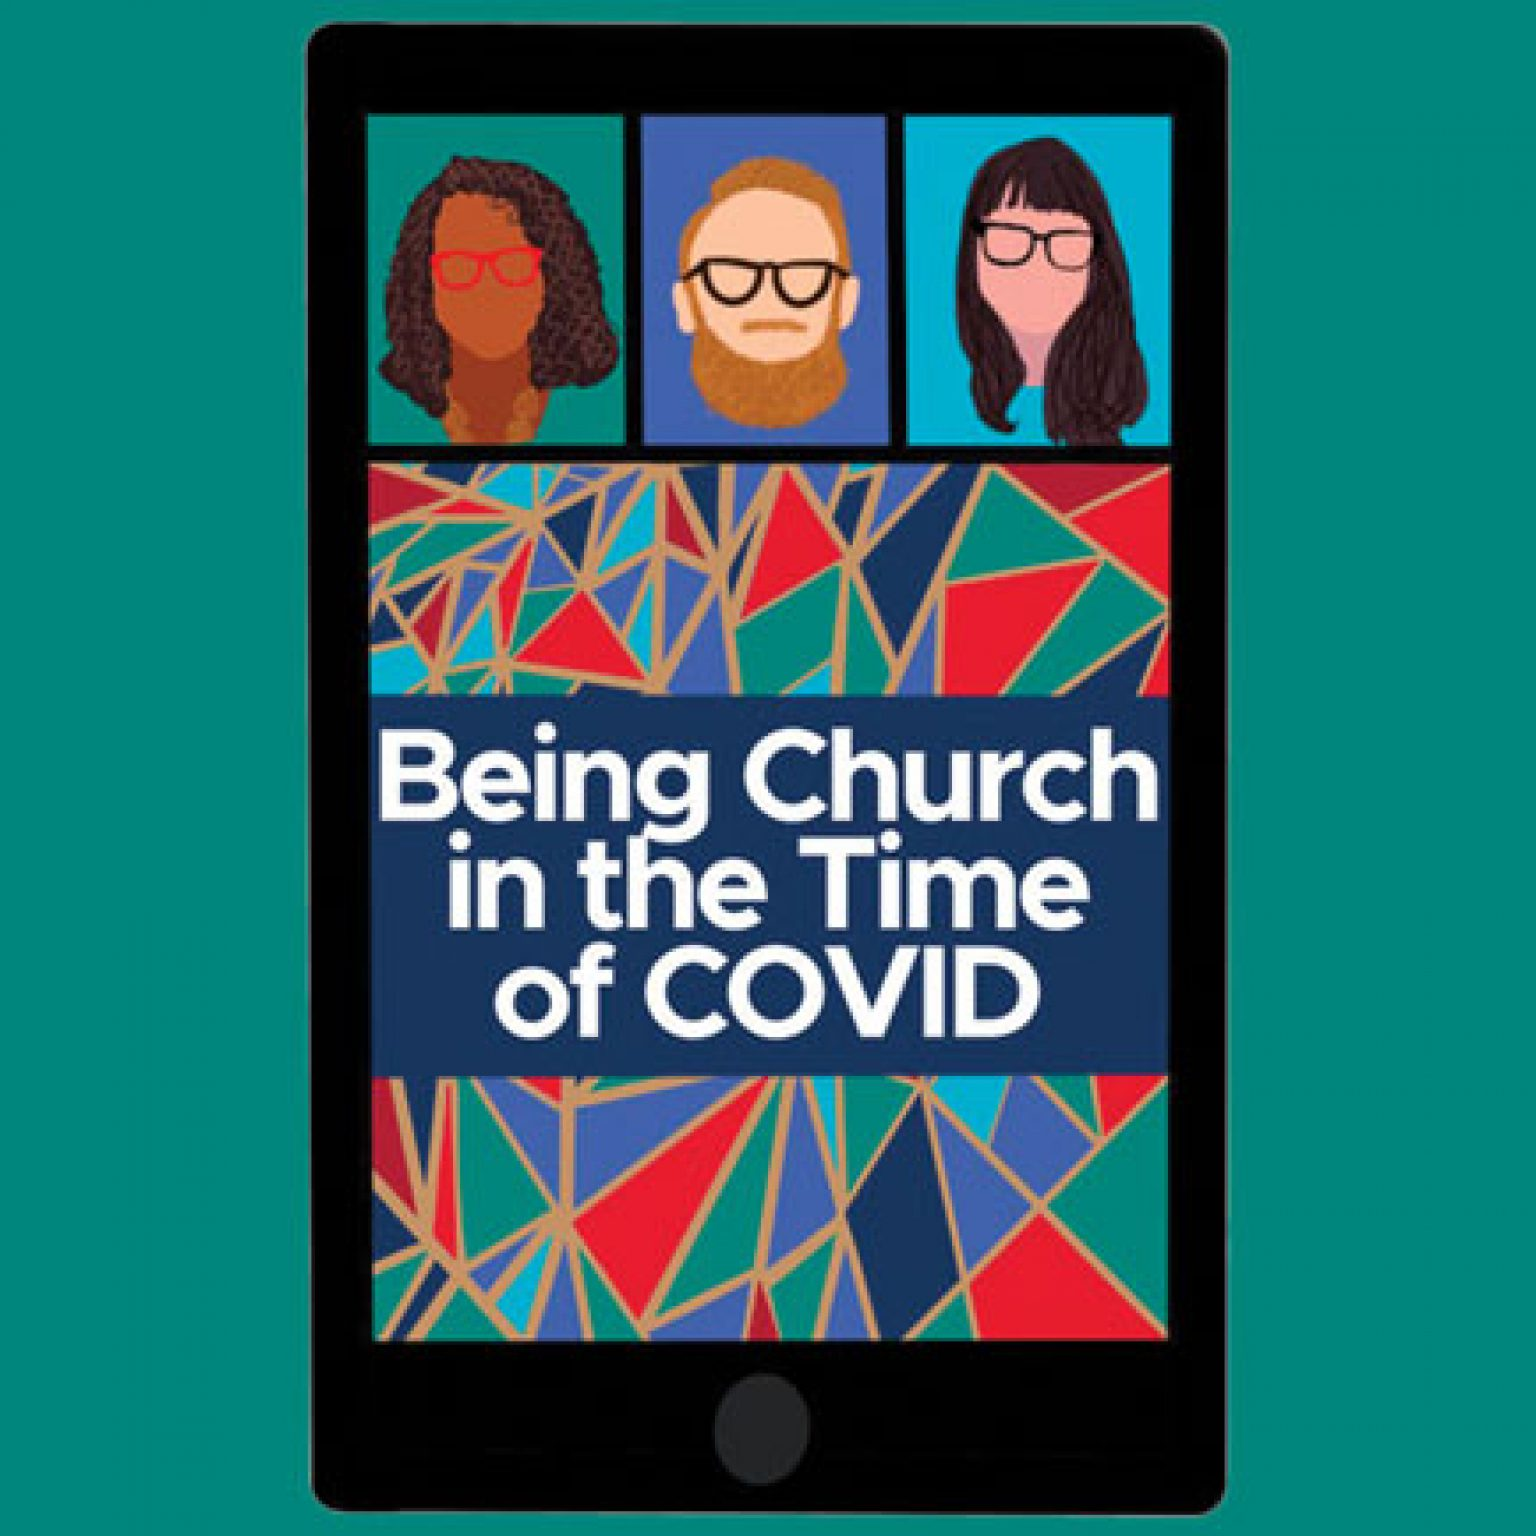 Being Church in the Time of Covid